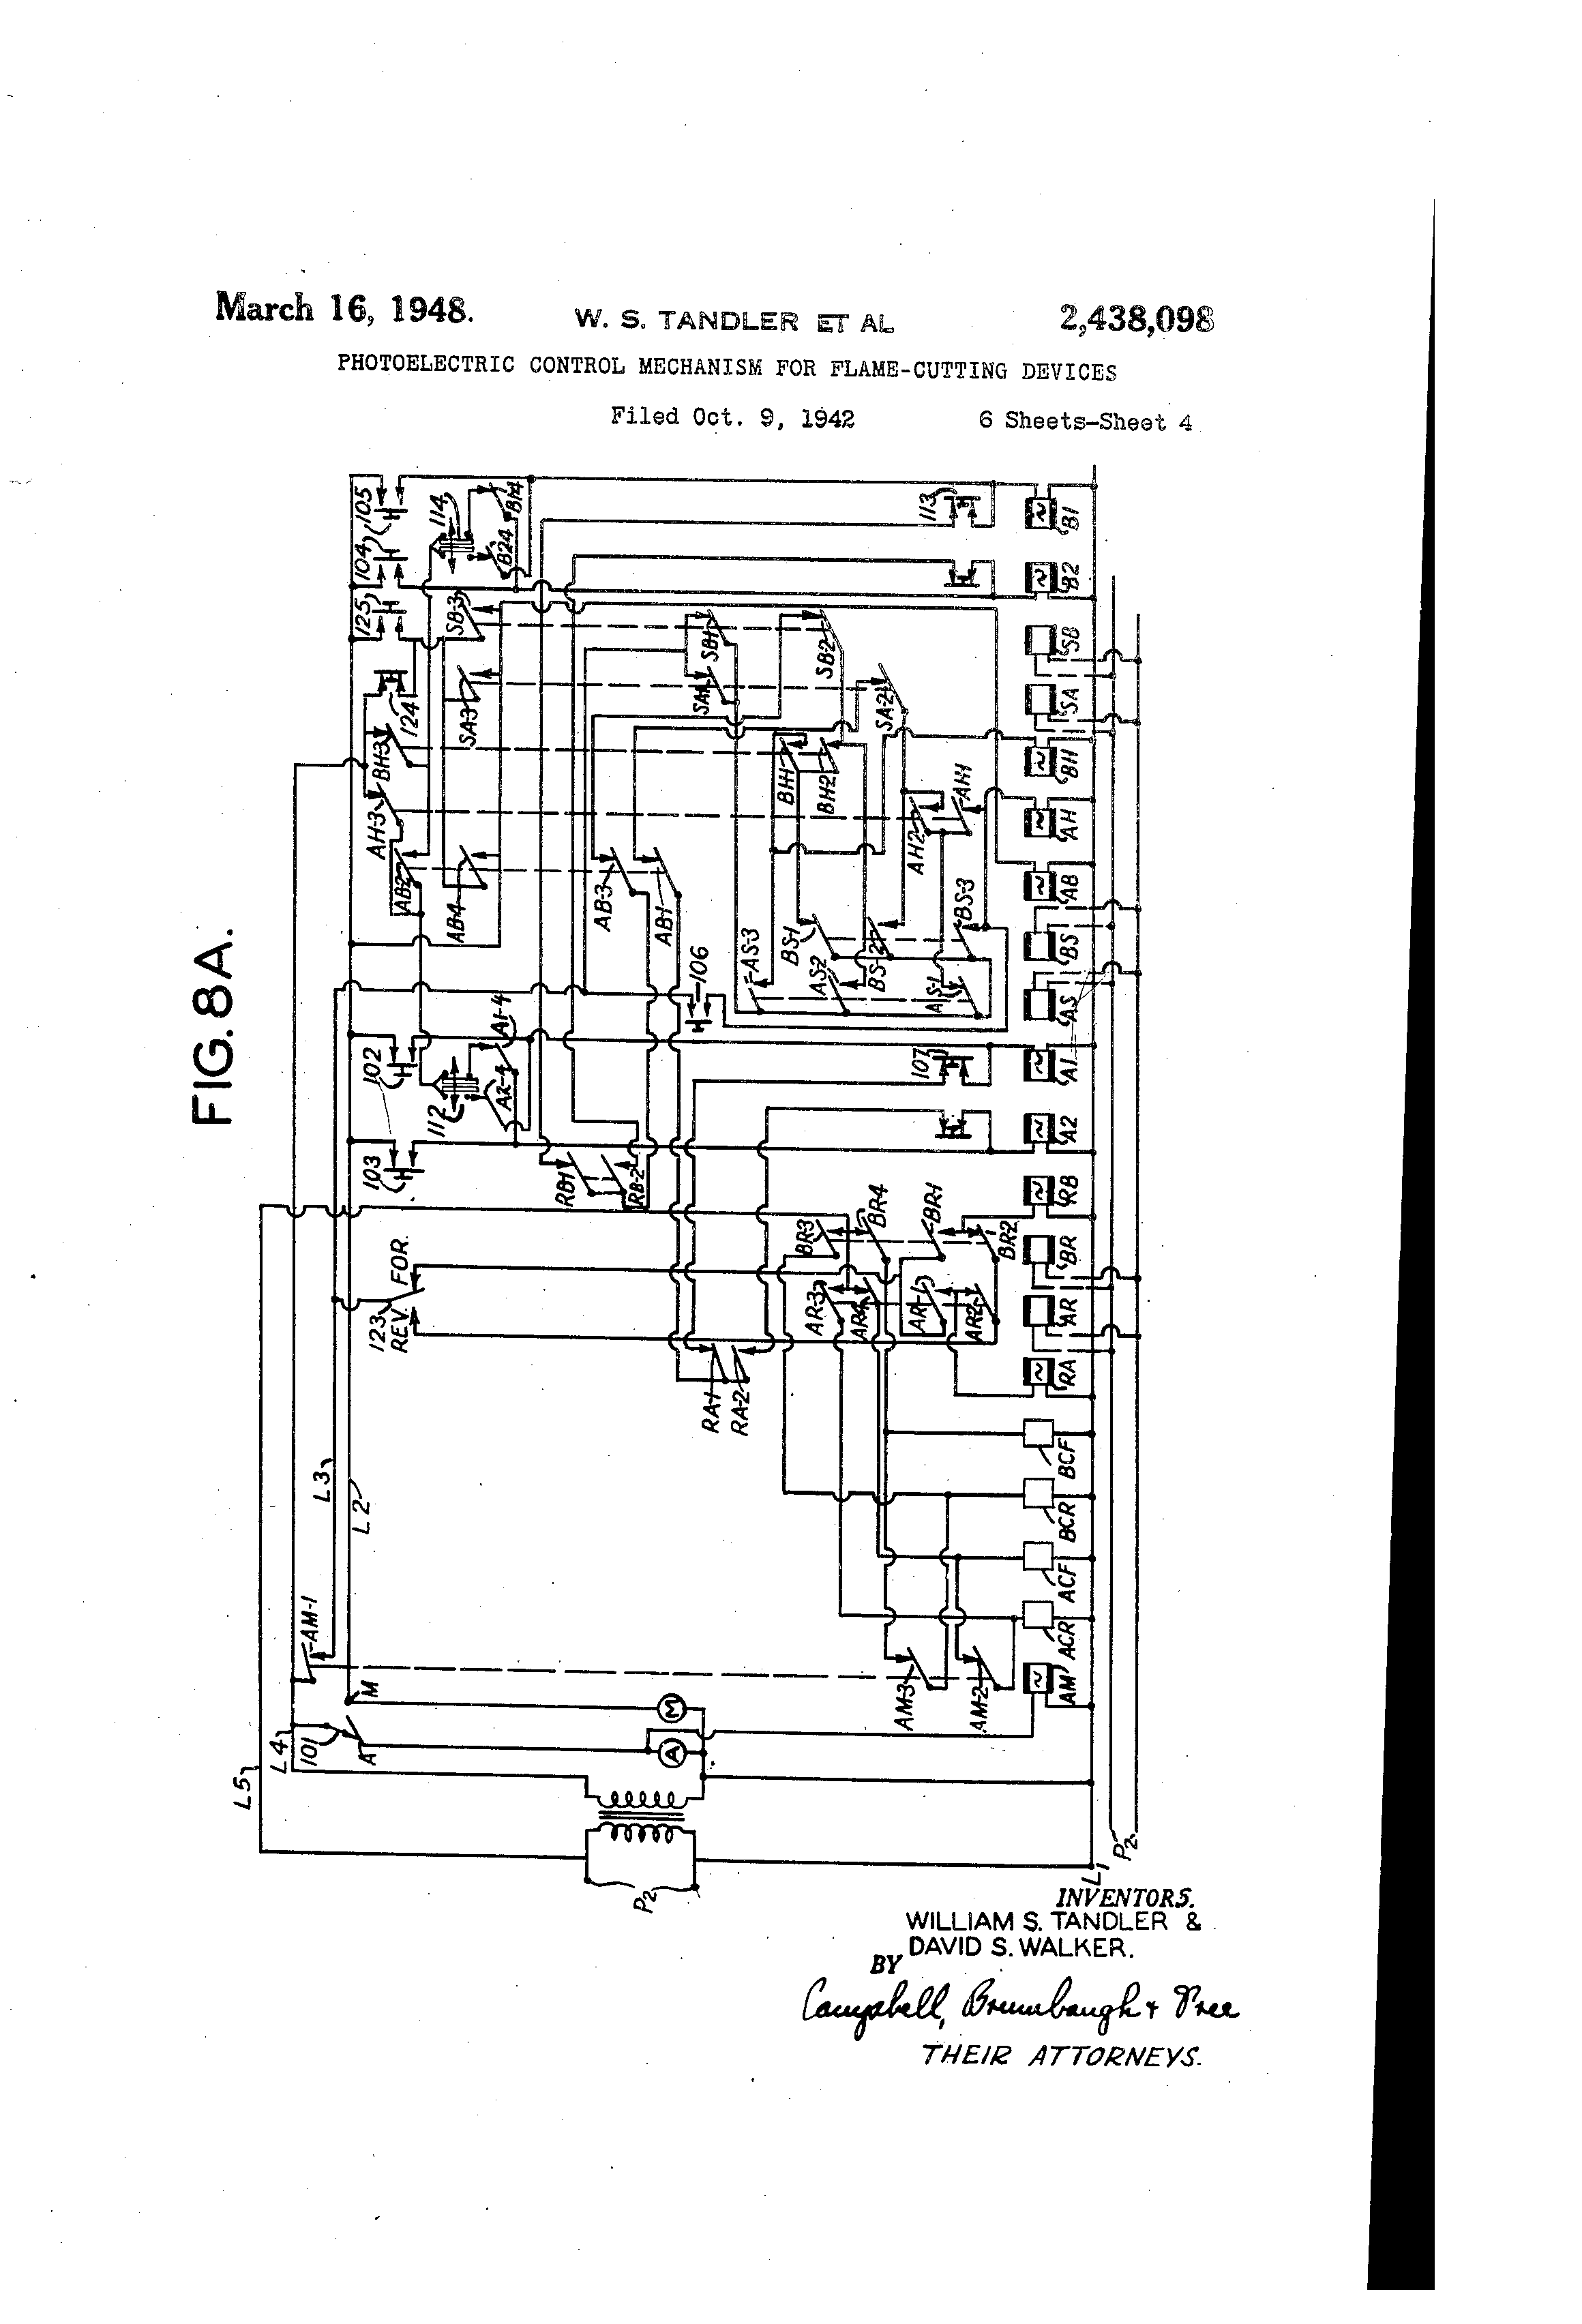 Toro workman wiring diagram on patent us2438098 photoelectric control mechanism for flame Toro Mower Wiring Diagram Toro Lawn Mower Schematic